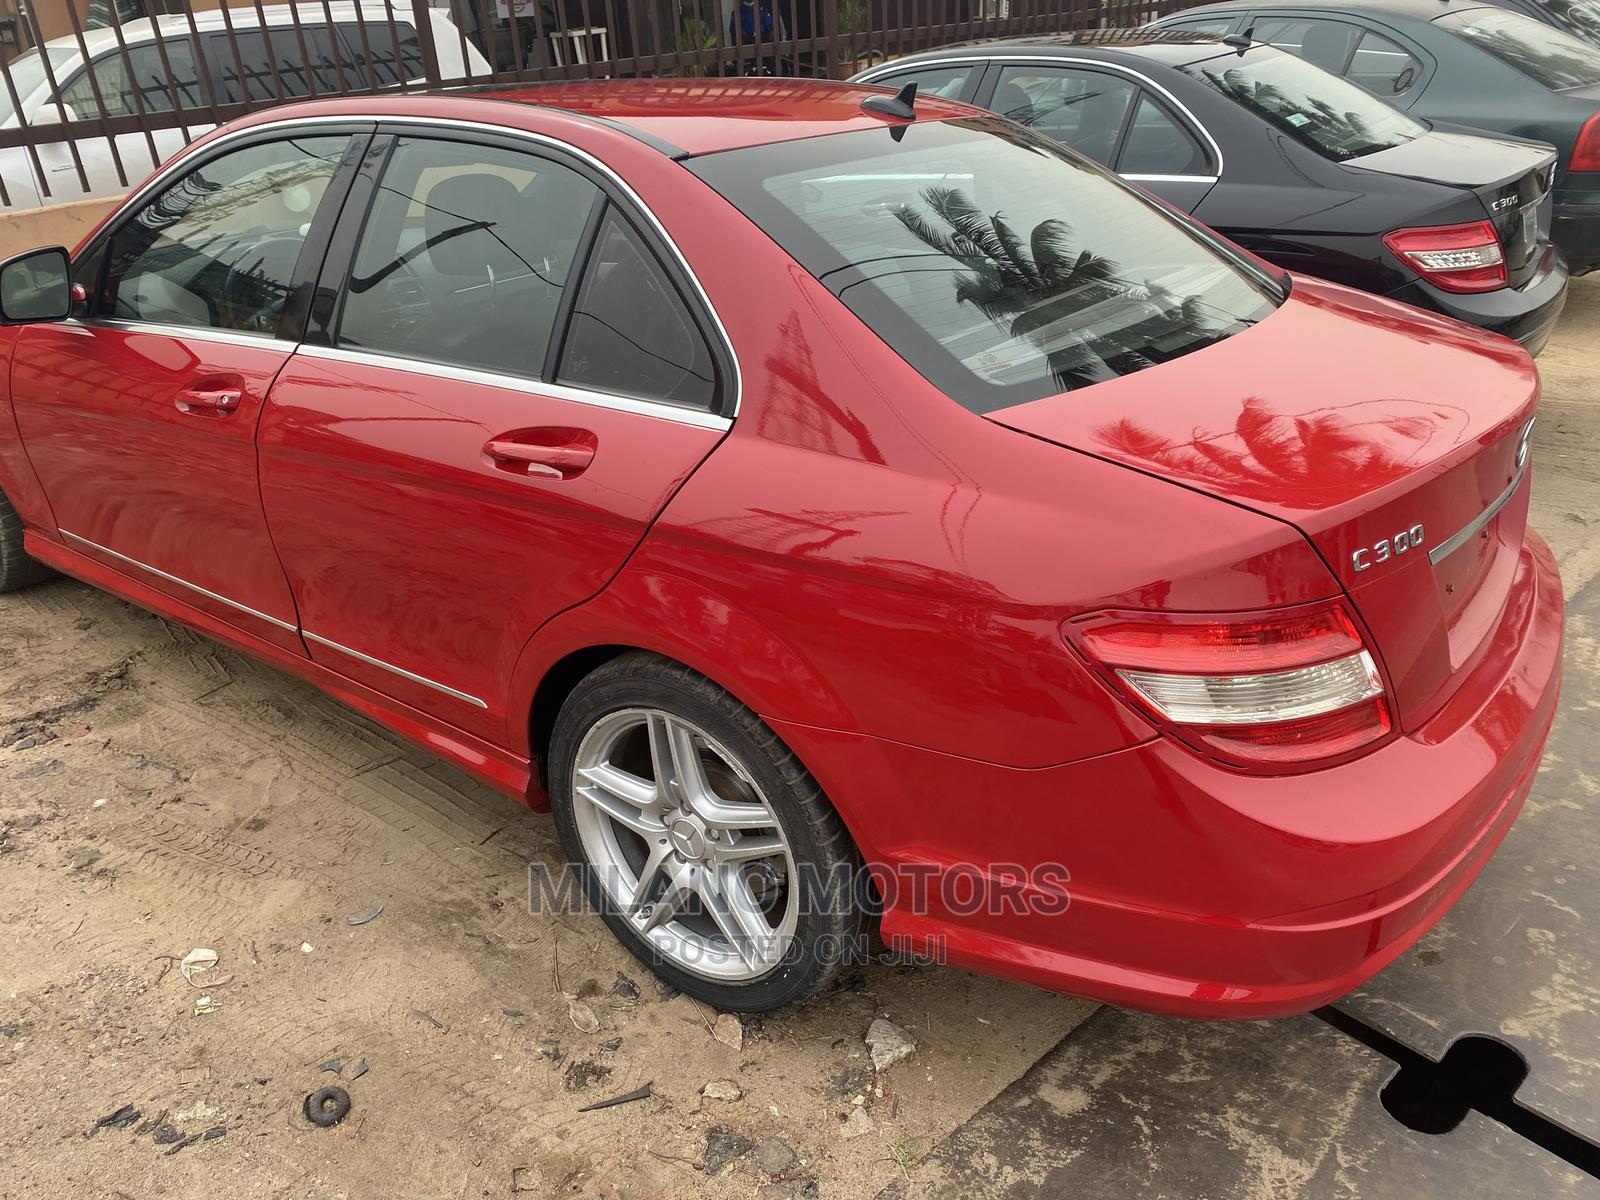 Archive: Mercedes-Benz C300 2009 Red